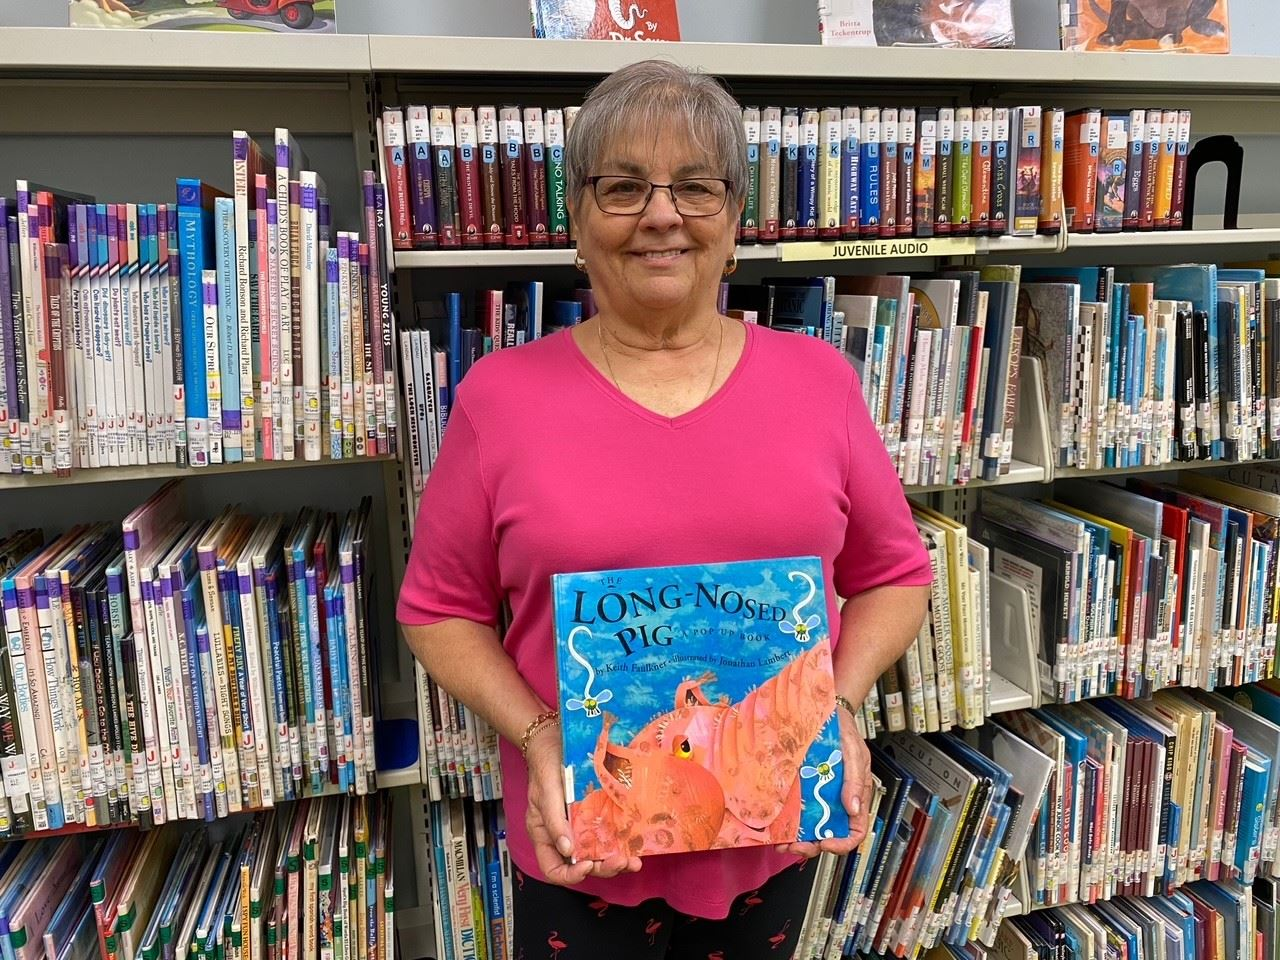 Teresa Valdez holds up her favorite book in front of a bookcase